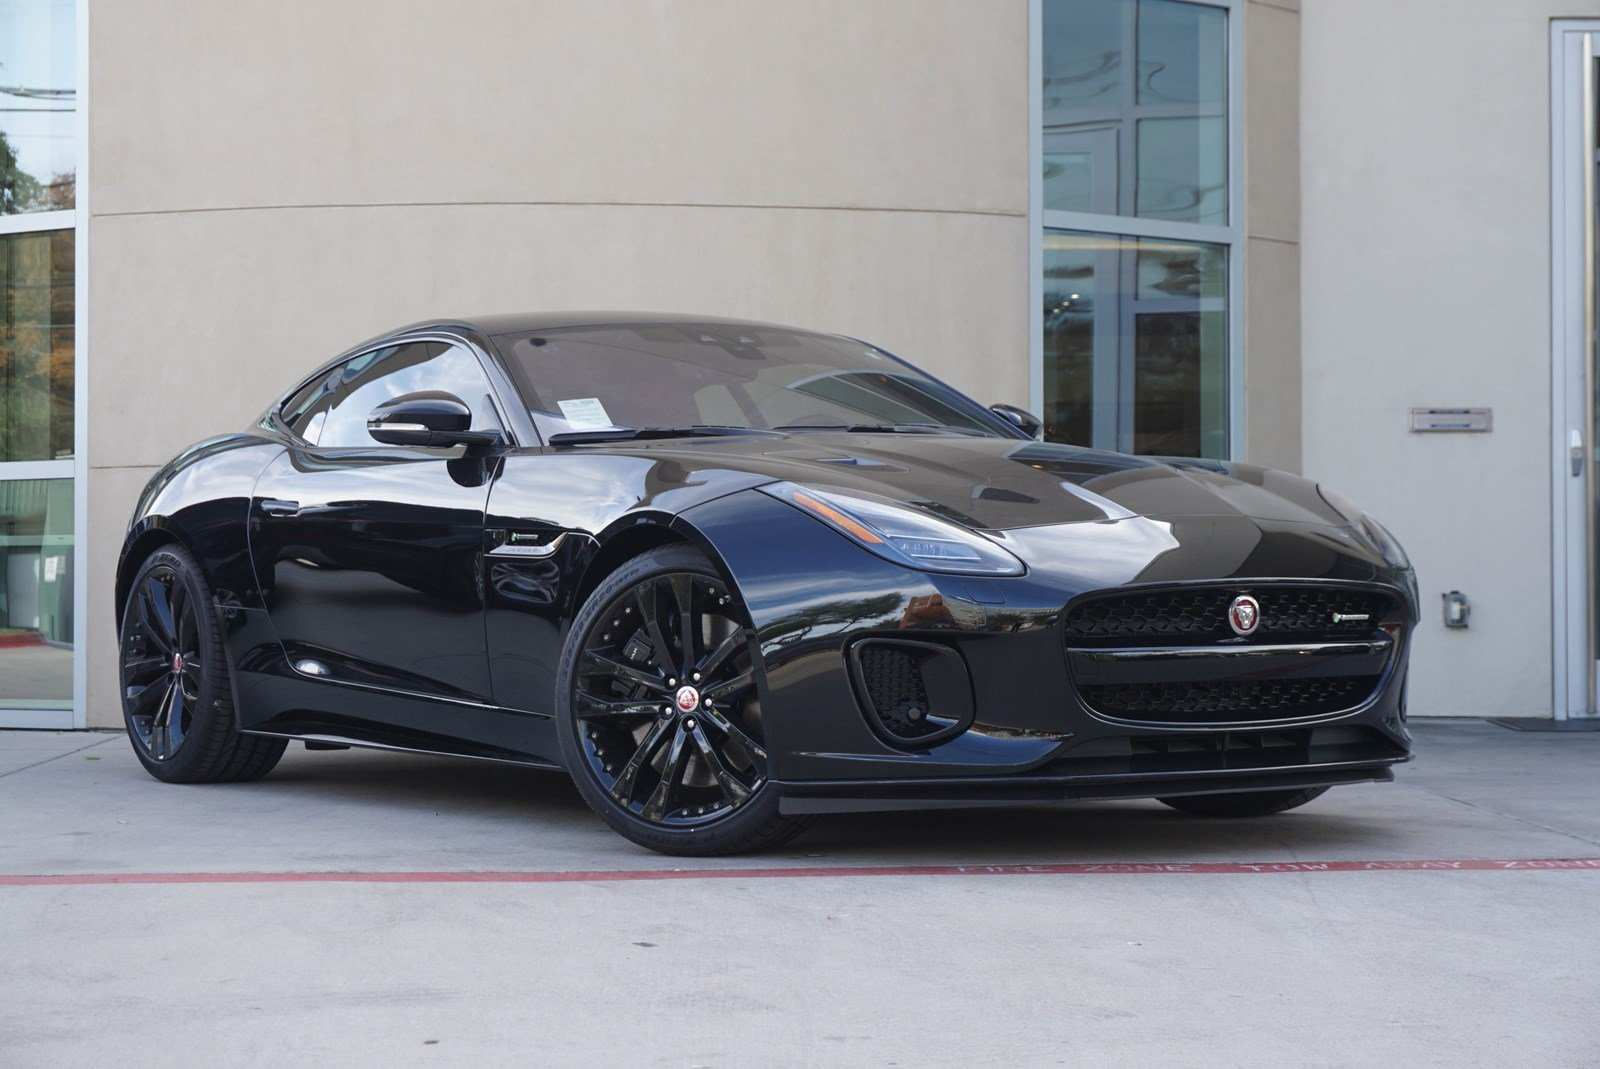 27 Great 2019 Jaguar F Type R Redesign and Concept by 2019 Jaguar F Type R